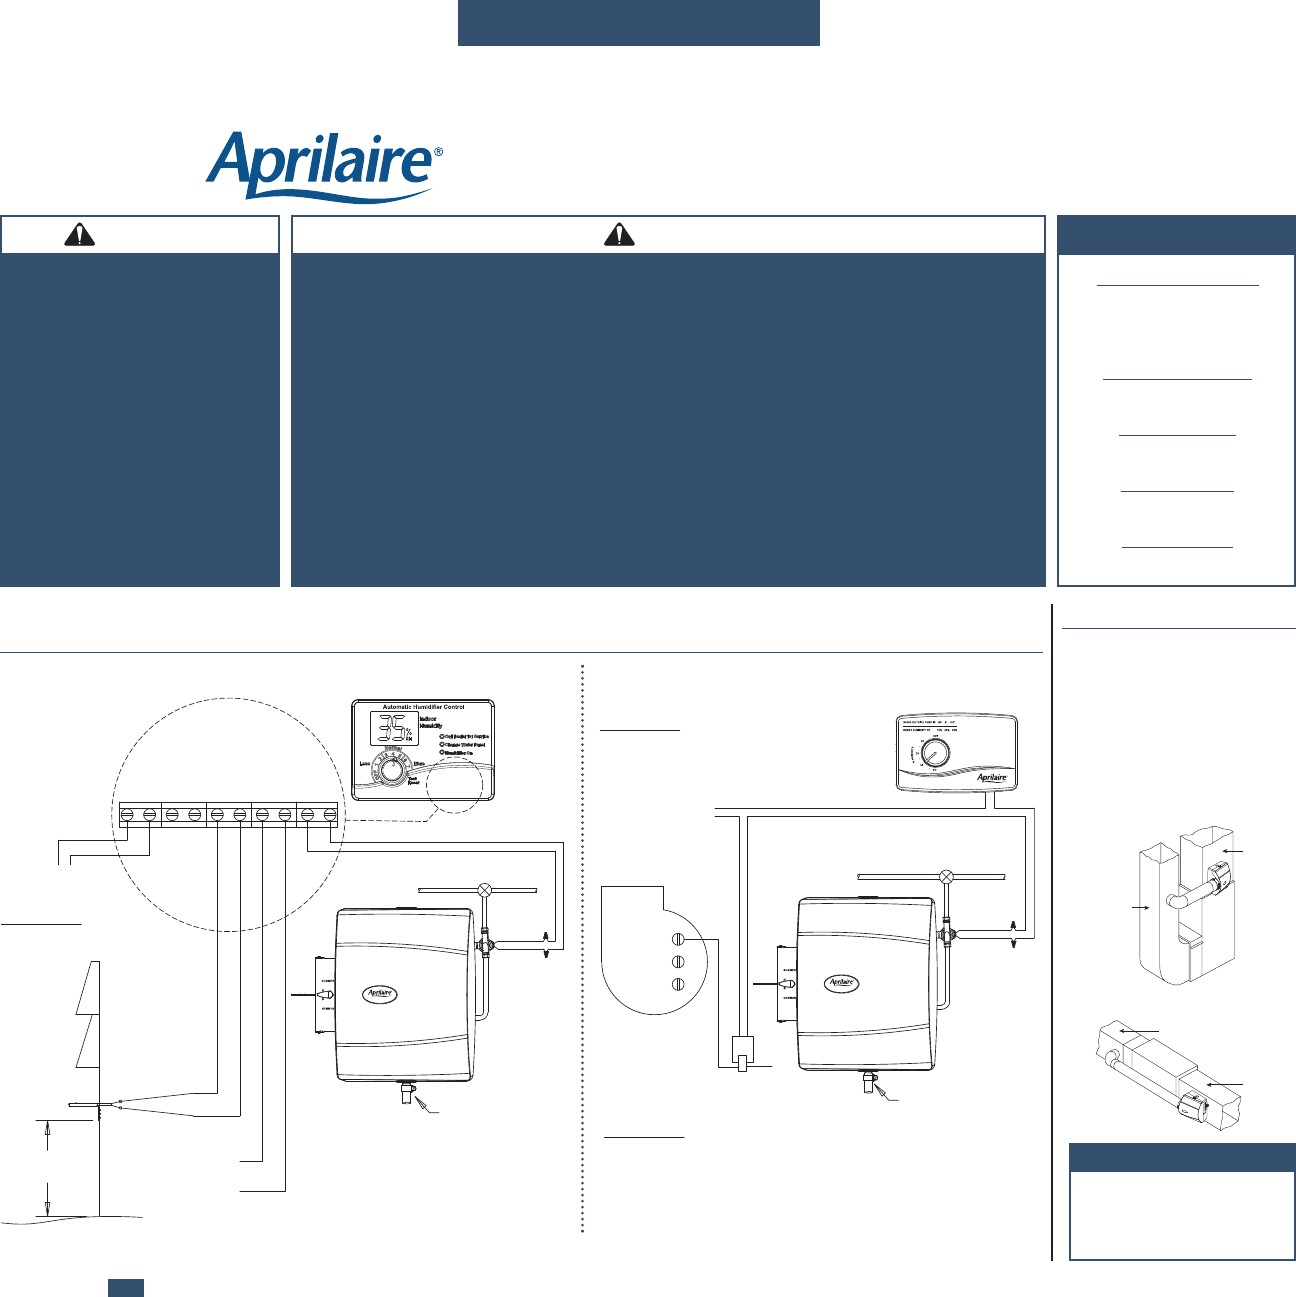 aprilaire 600 wiring diagram wiring diagram image 2Wire Thermostat Wiring Diagram at Carrier Humidifier Wiring Diagram